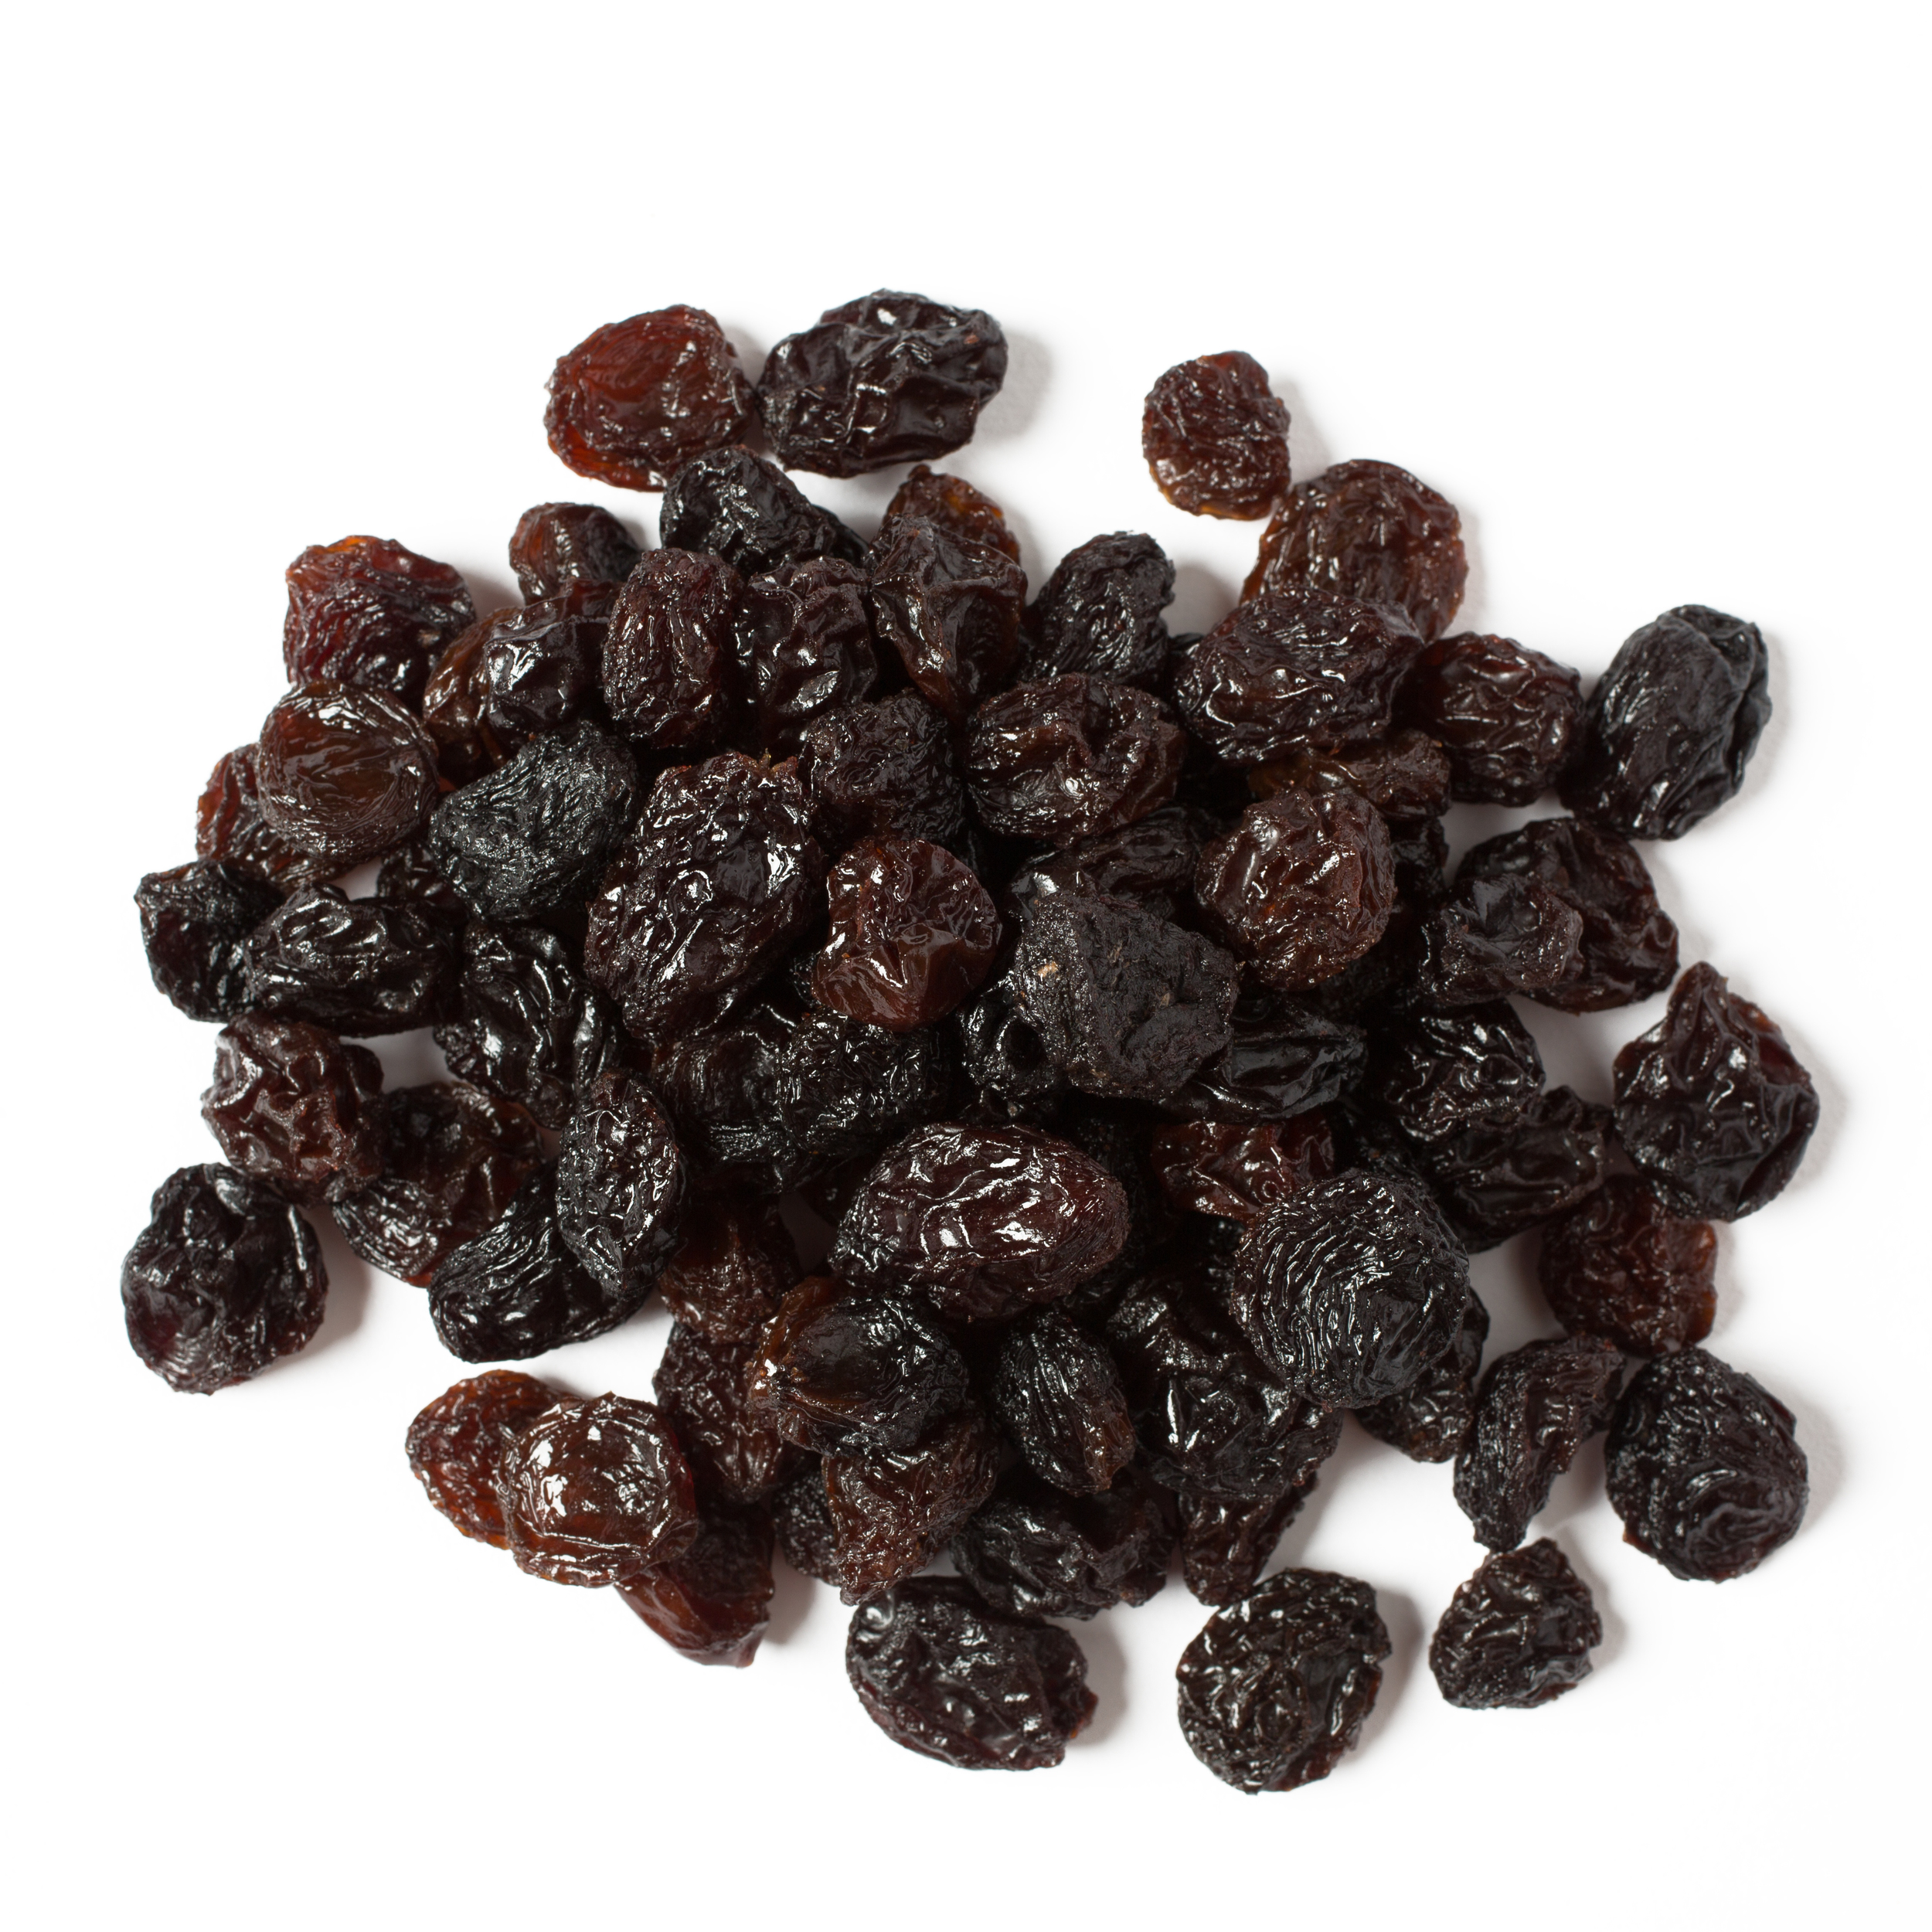 9-raisins_X3A8487-sq.jpg